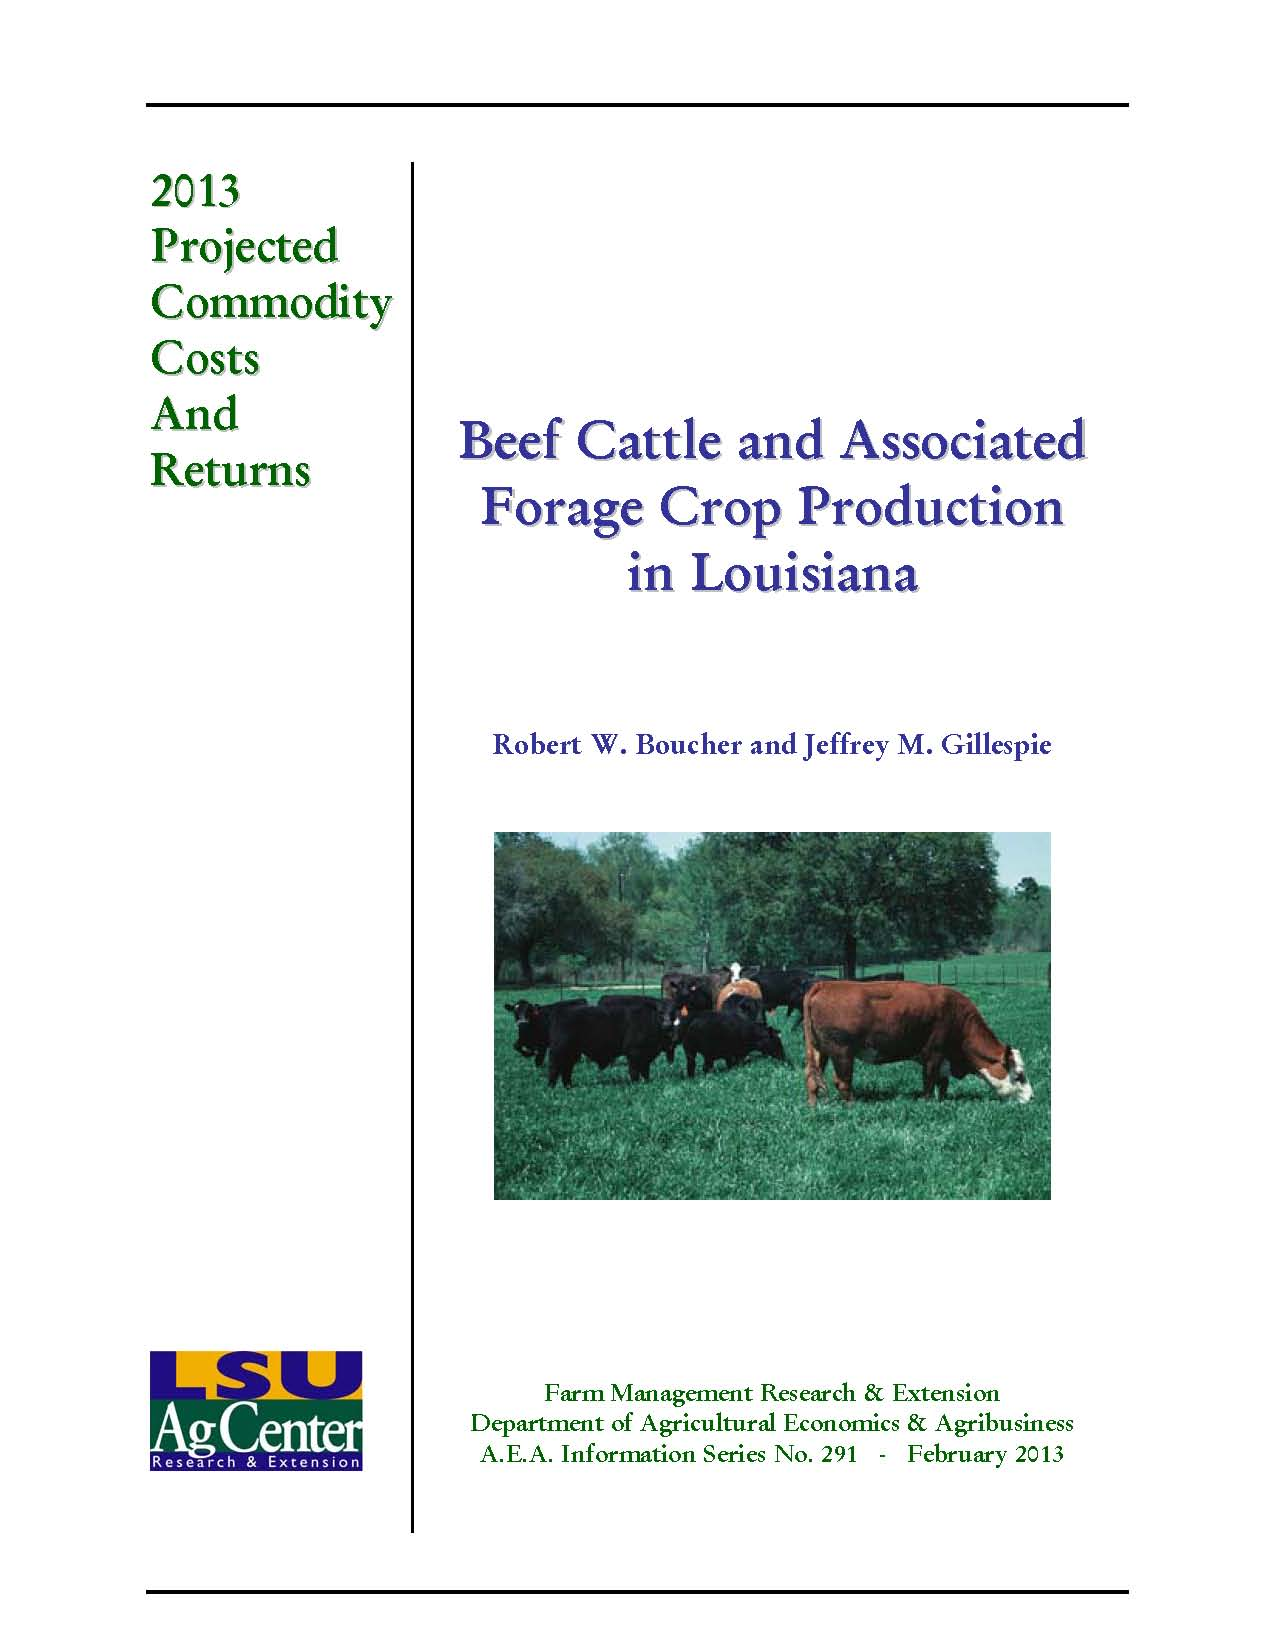 Projected Costs and Returns For Beef Cattle and Associated Forage Crops in Louisiana 2013.